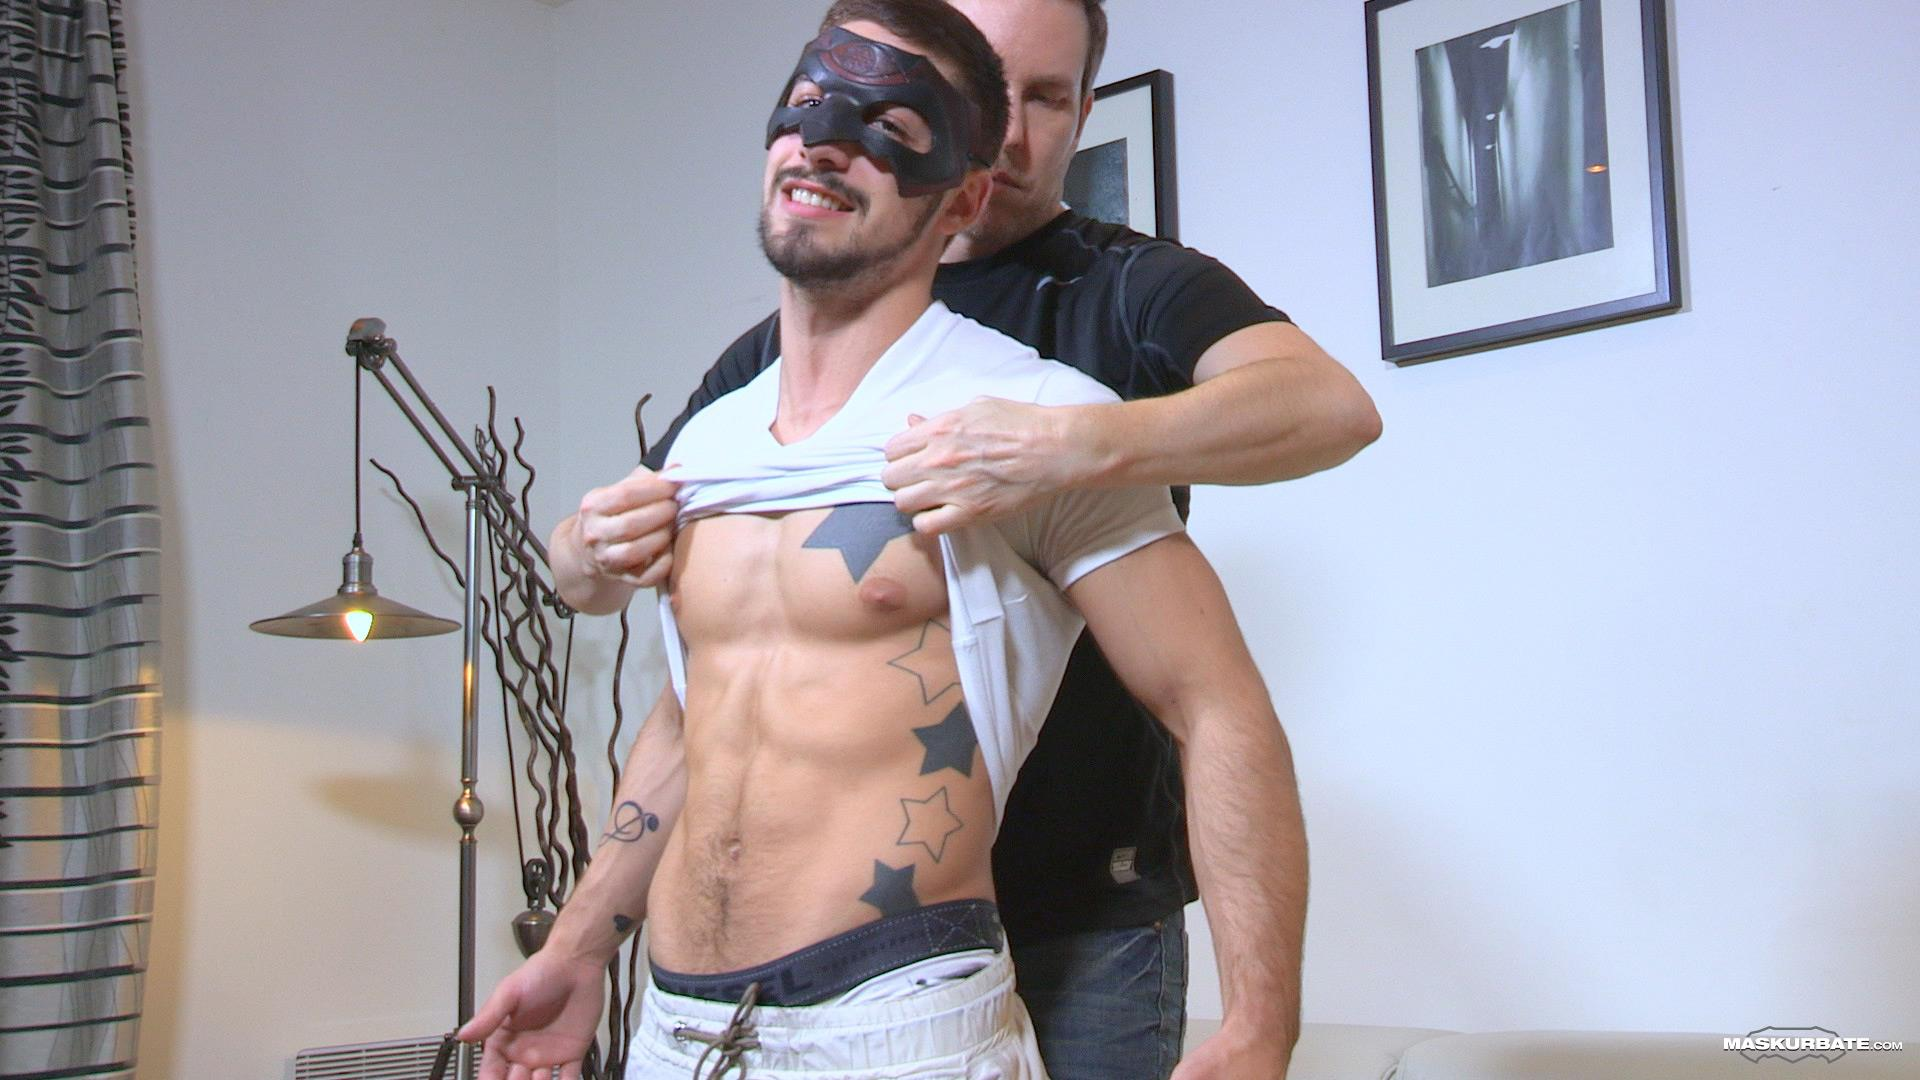 Maskurbate Carl Straight Muscle Jock With A Big Cock Amateur Gay Porn 01